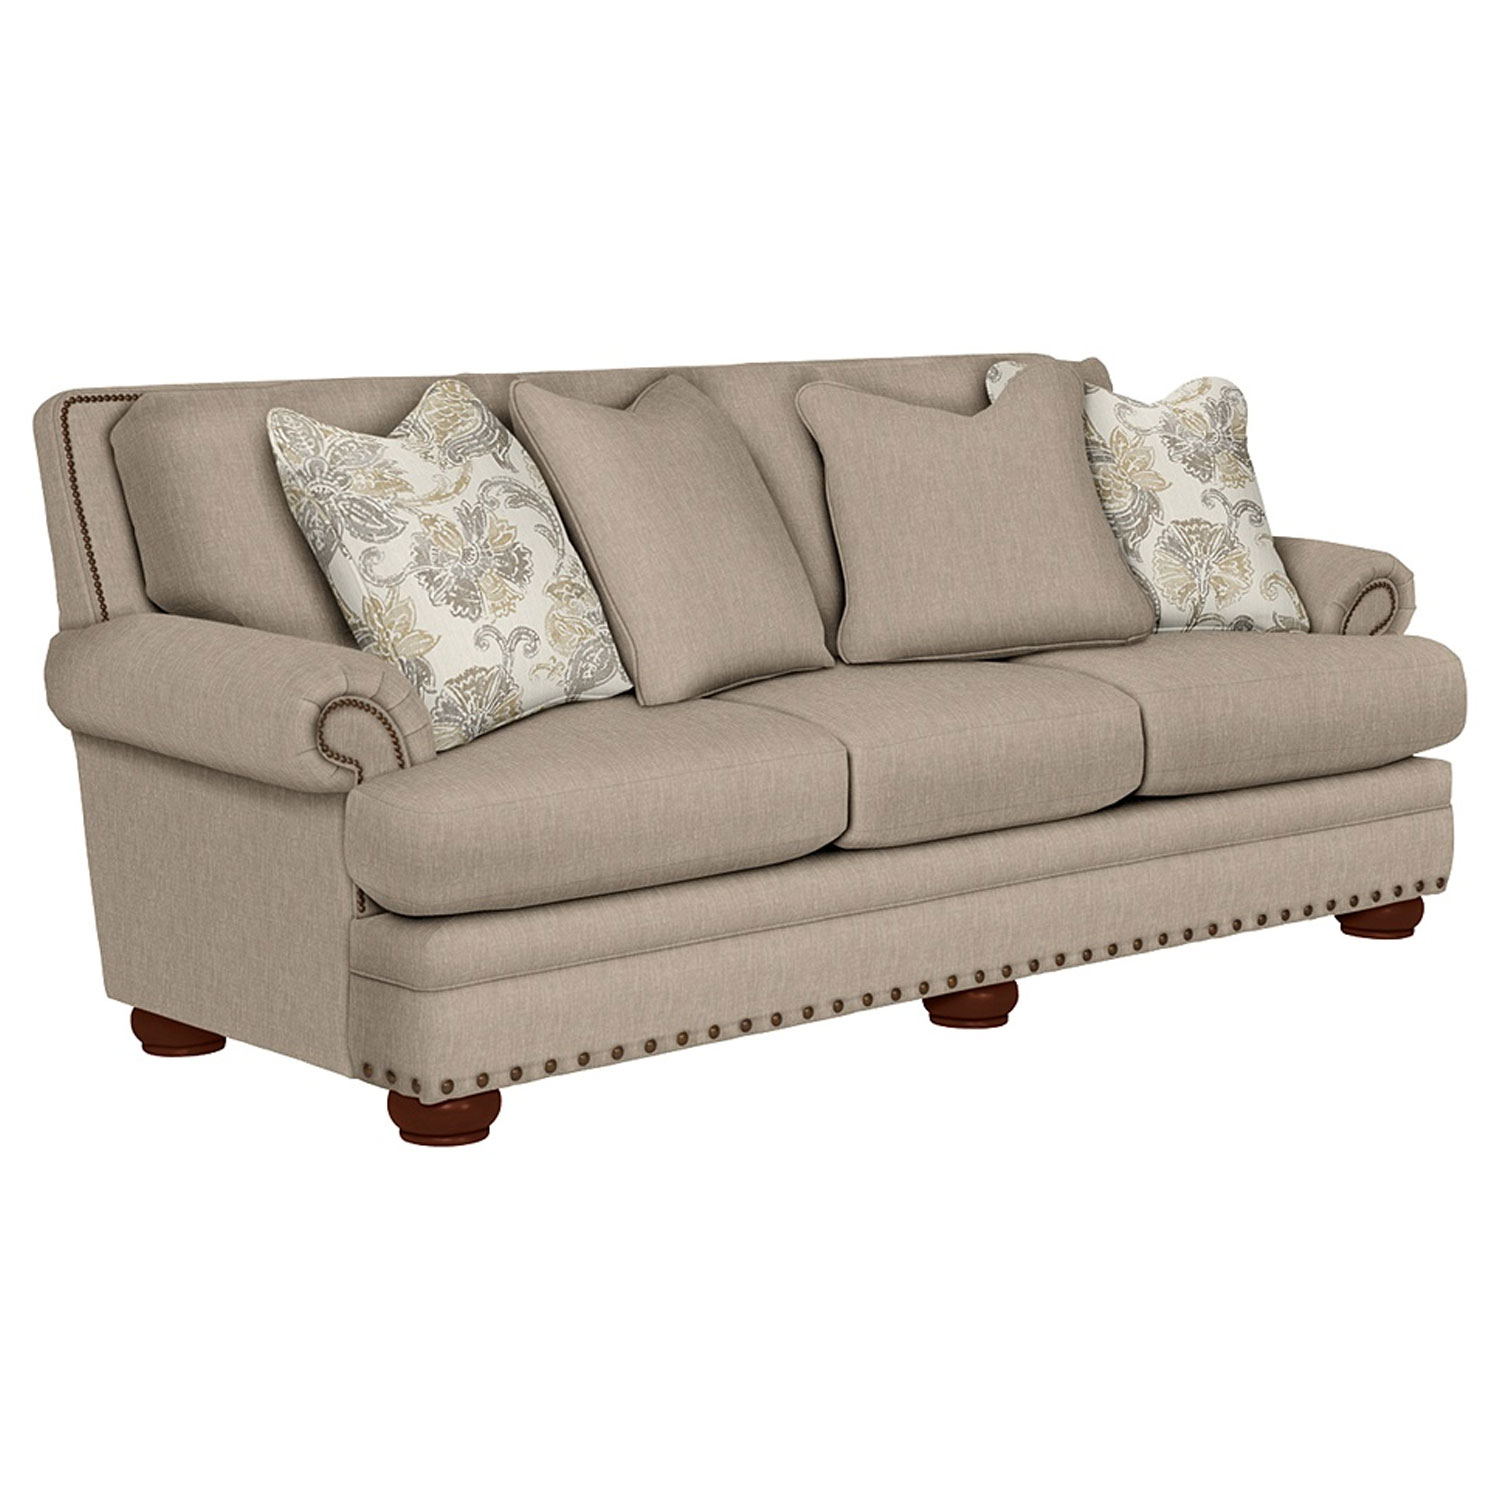 Lazboy 610 657 Brennan Premier Stationary Sofa | Hope Home With Regard To Brennan Sofa Chairs (View 3 of 25)